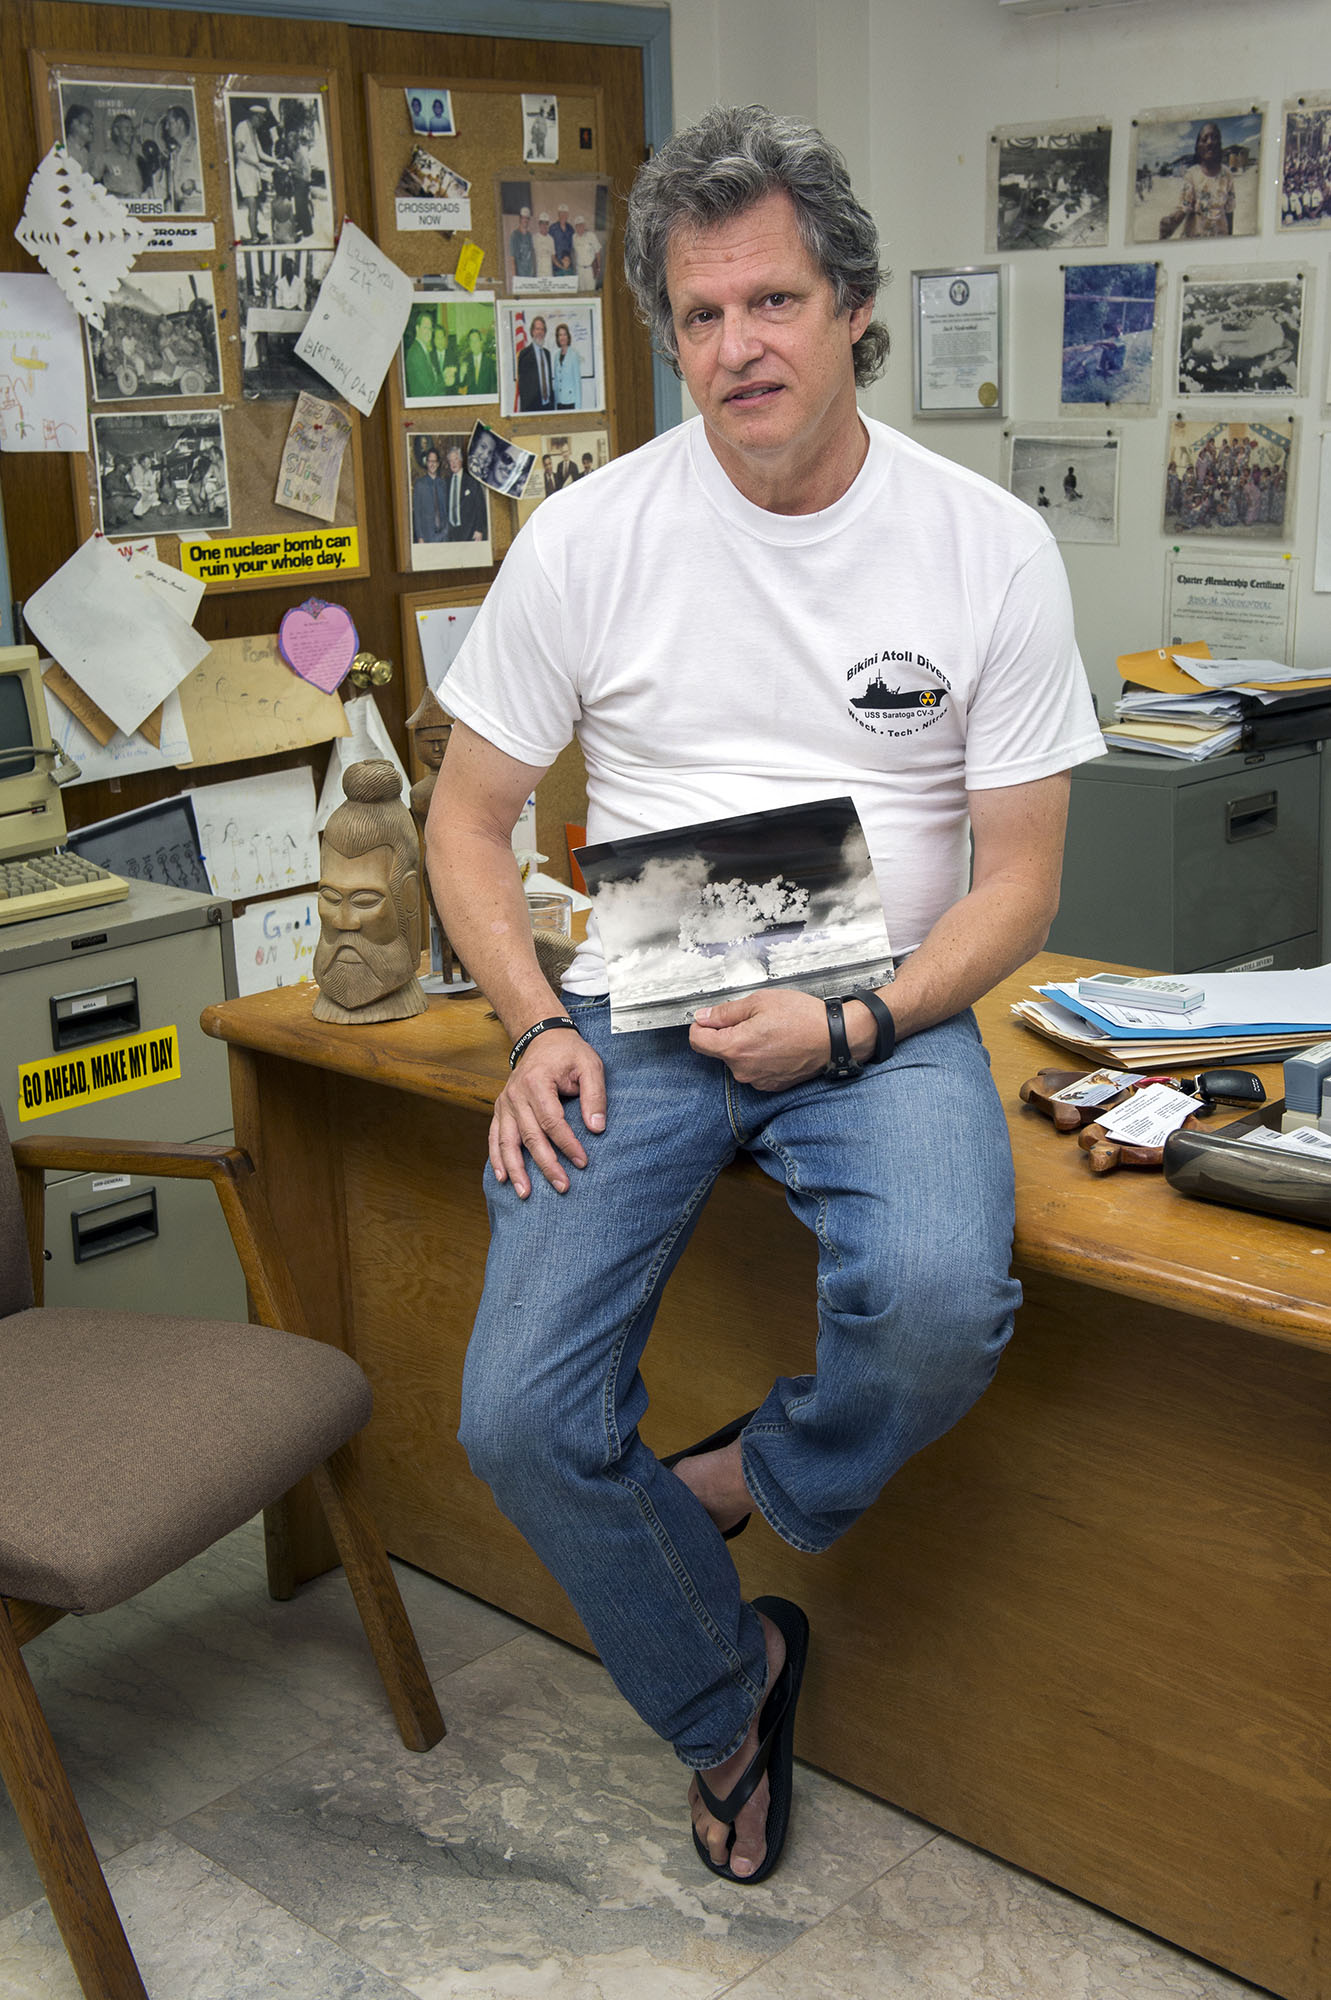 <p>Jack Niedenthal, the Bikini liaison, in his Majuro office, holding a photo of one of the U.S. nuclear explosions in the atoll.</p>